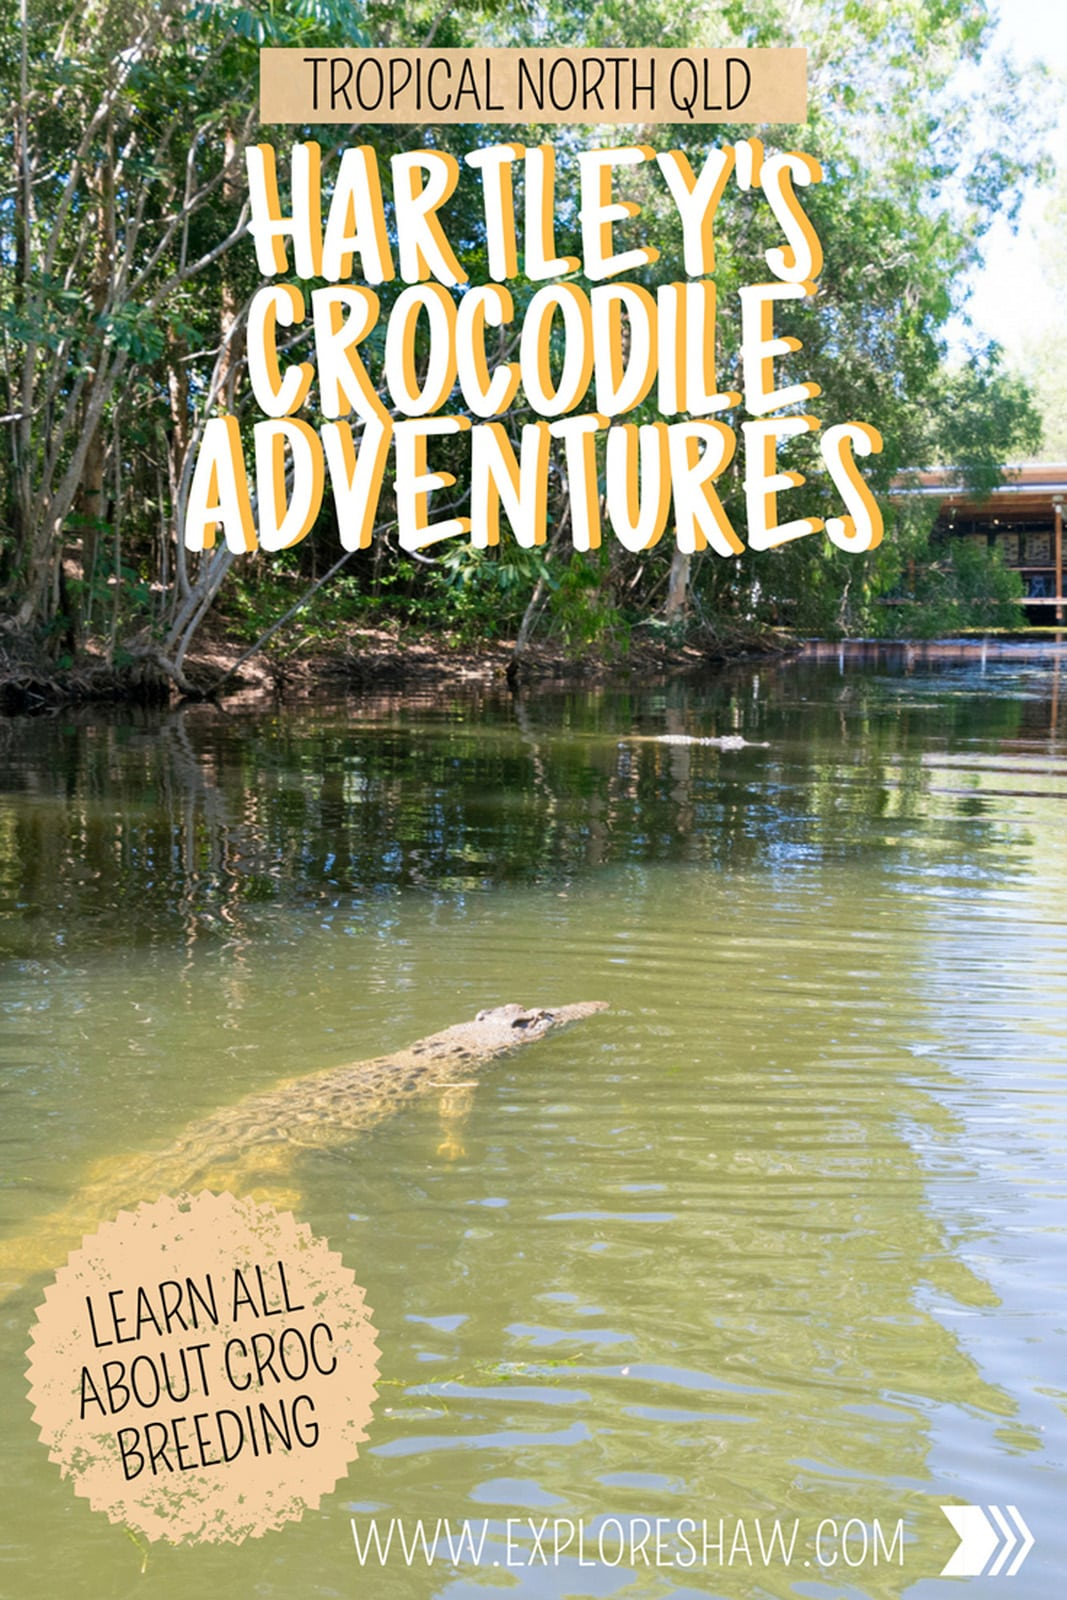 To get up close and personal with a massive crocodile, head to Hartley's Crocodile Adventures, sitting half way between Port Douglas and Cairns in Tropical North Queensland.  #Queensland #Australia #TropicalNorthQueensland